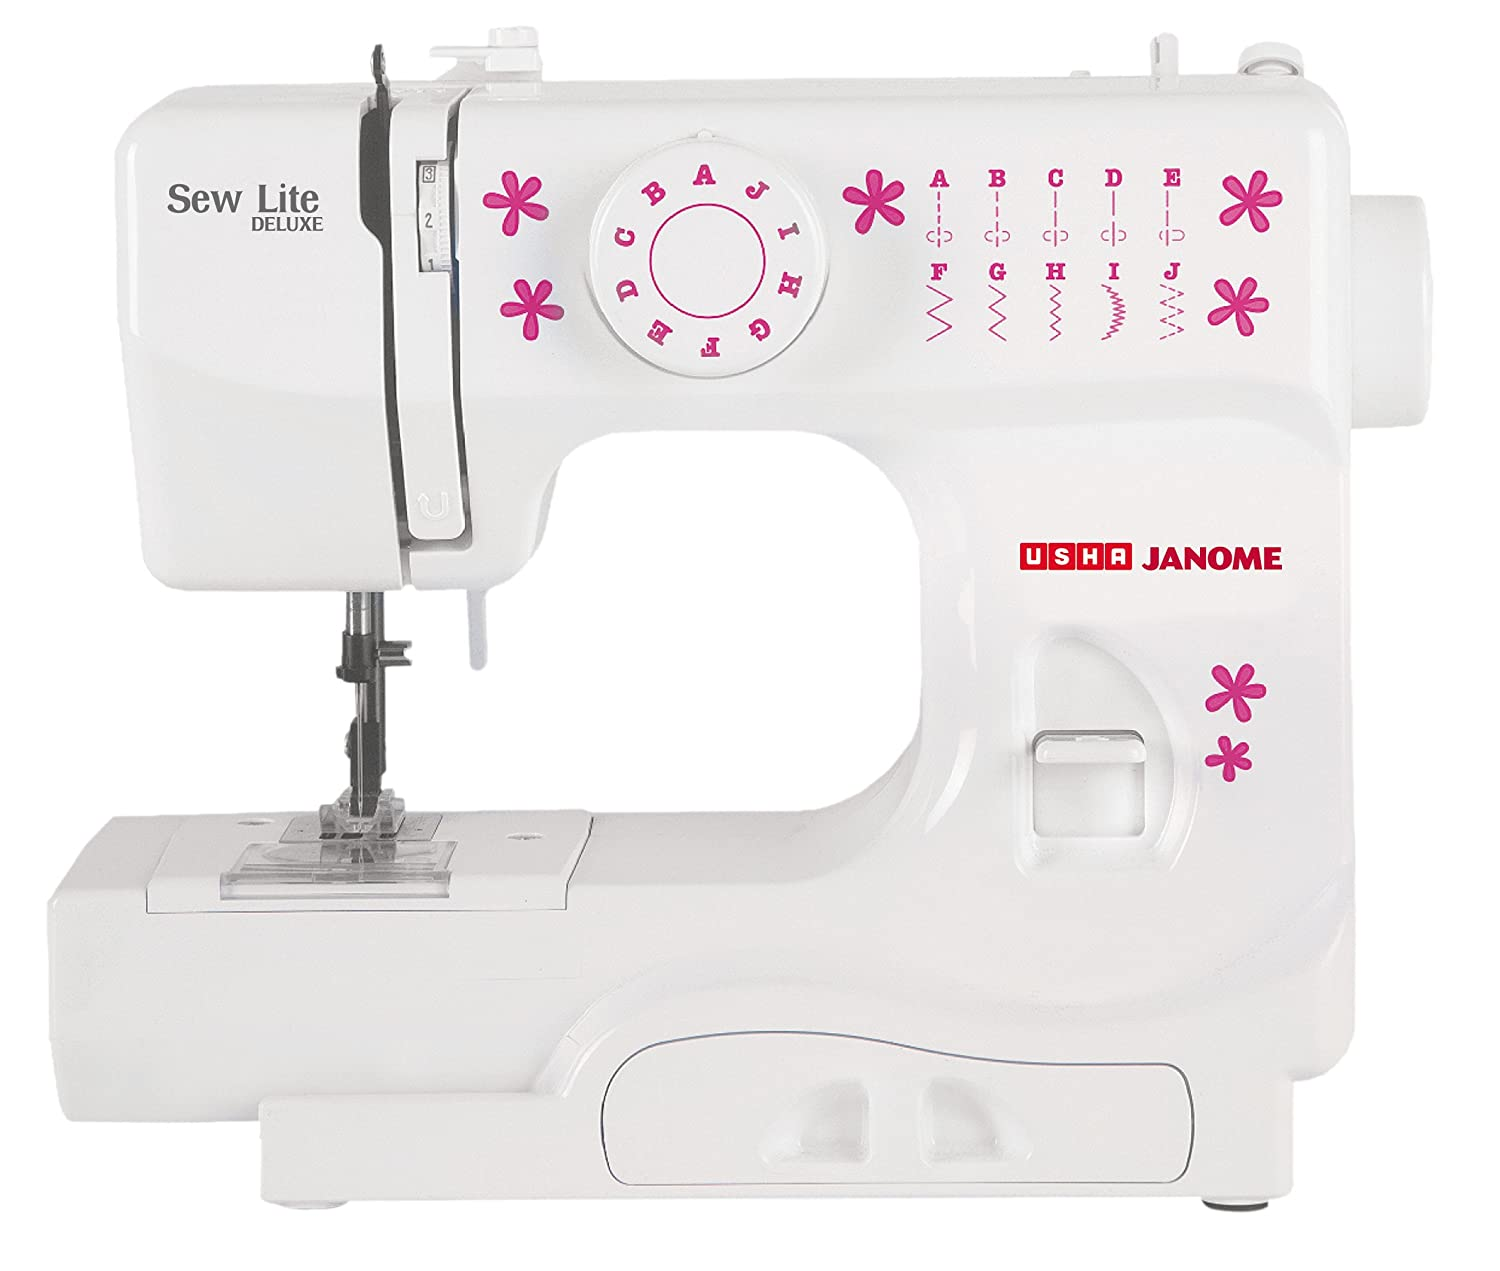 Usha Janome Sew Lite Deluxe Sewing Machine